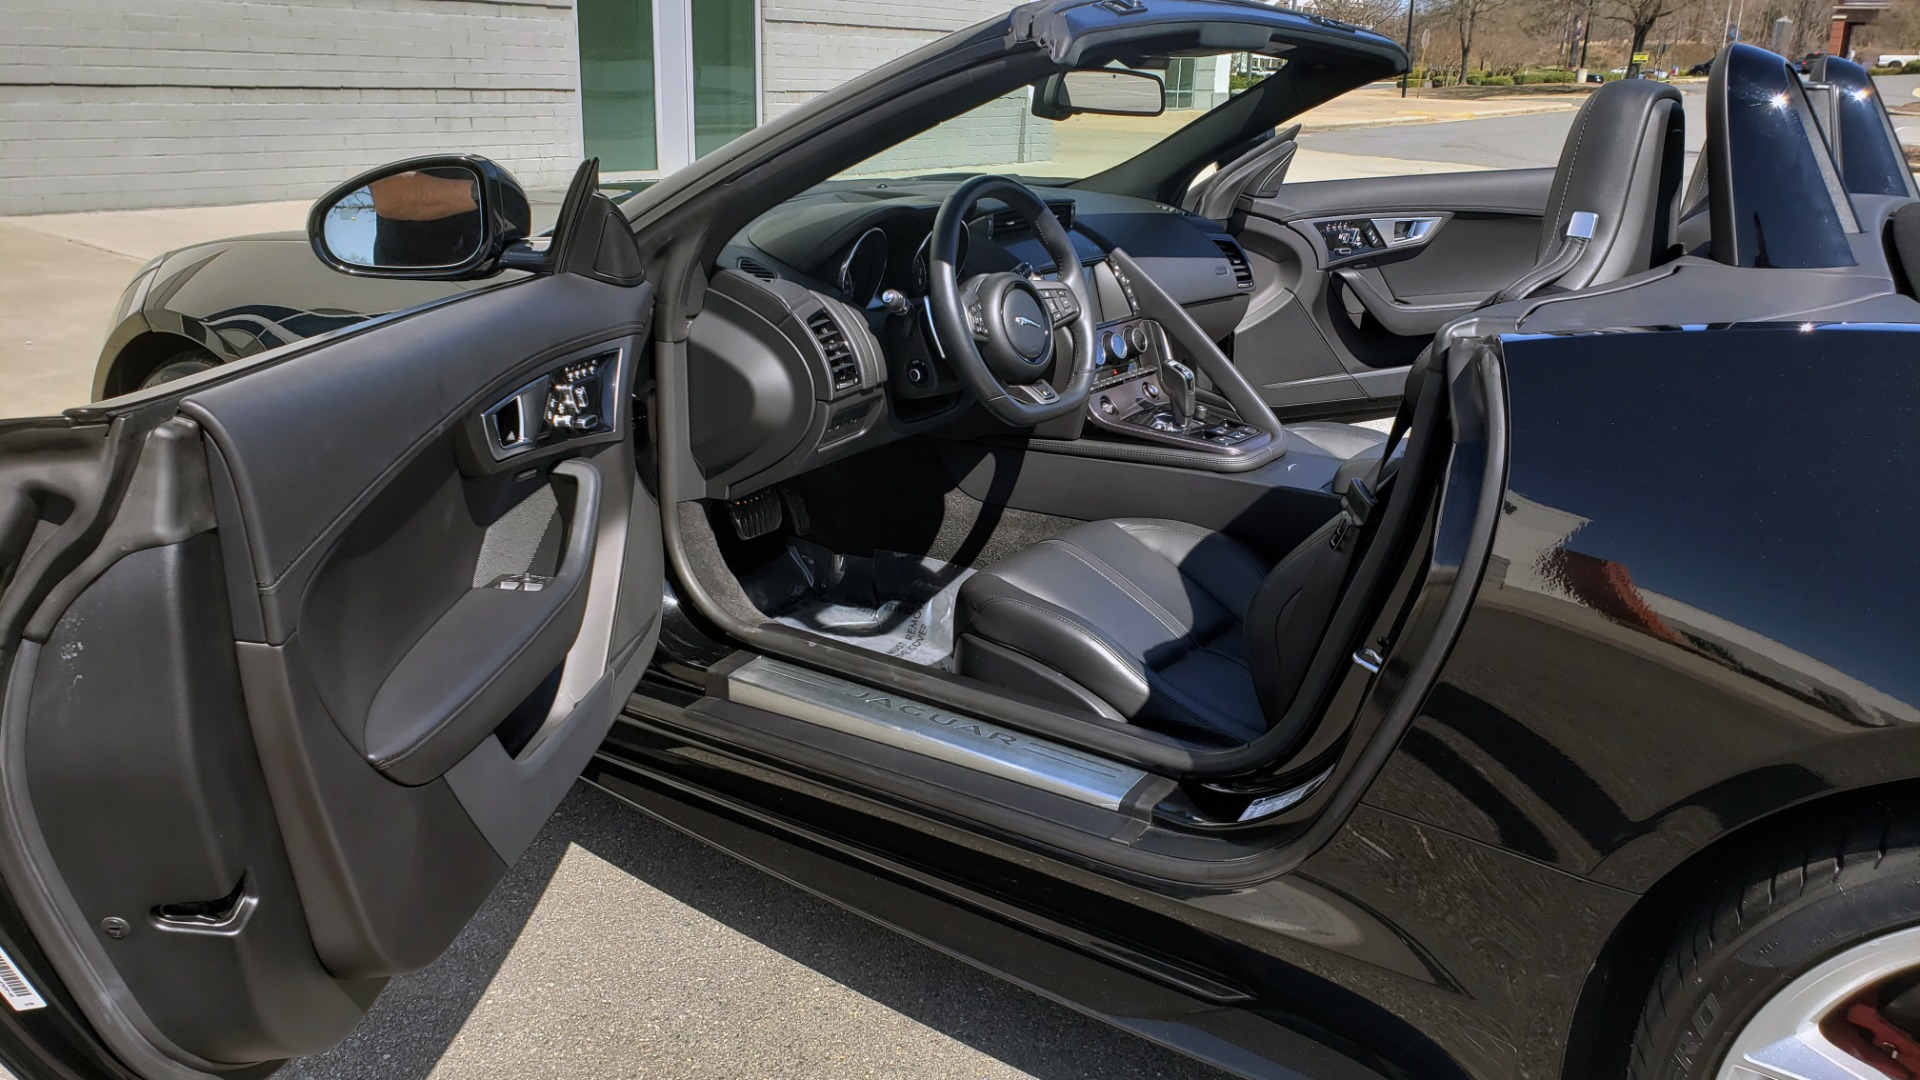 Used 2016 Jaguar F-TYPE R CONVERTIBLE / SC 5.0L 550HP / VISION PACK 3 / BSM / REARVIEW for sale $63,000 at Formula Imports in Charlotte NC 28227 82